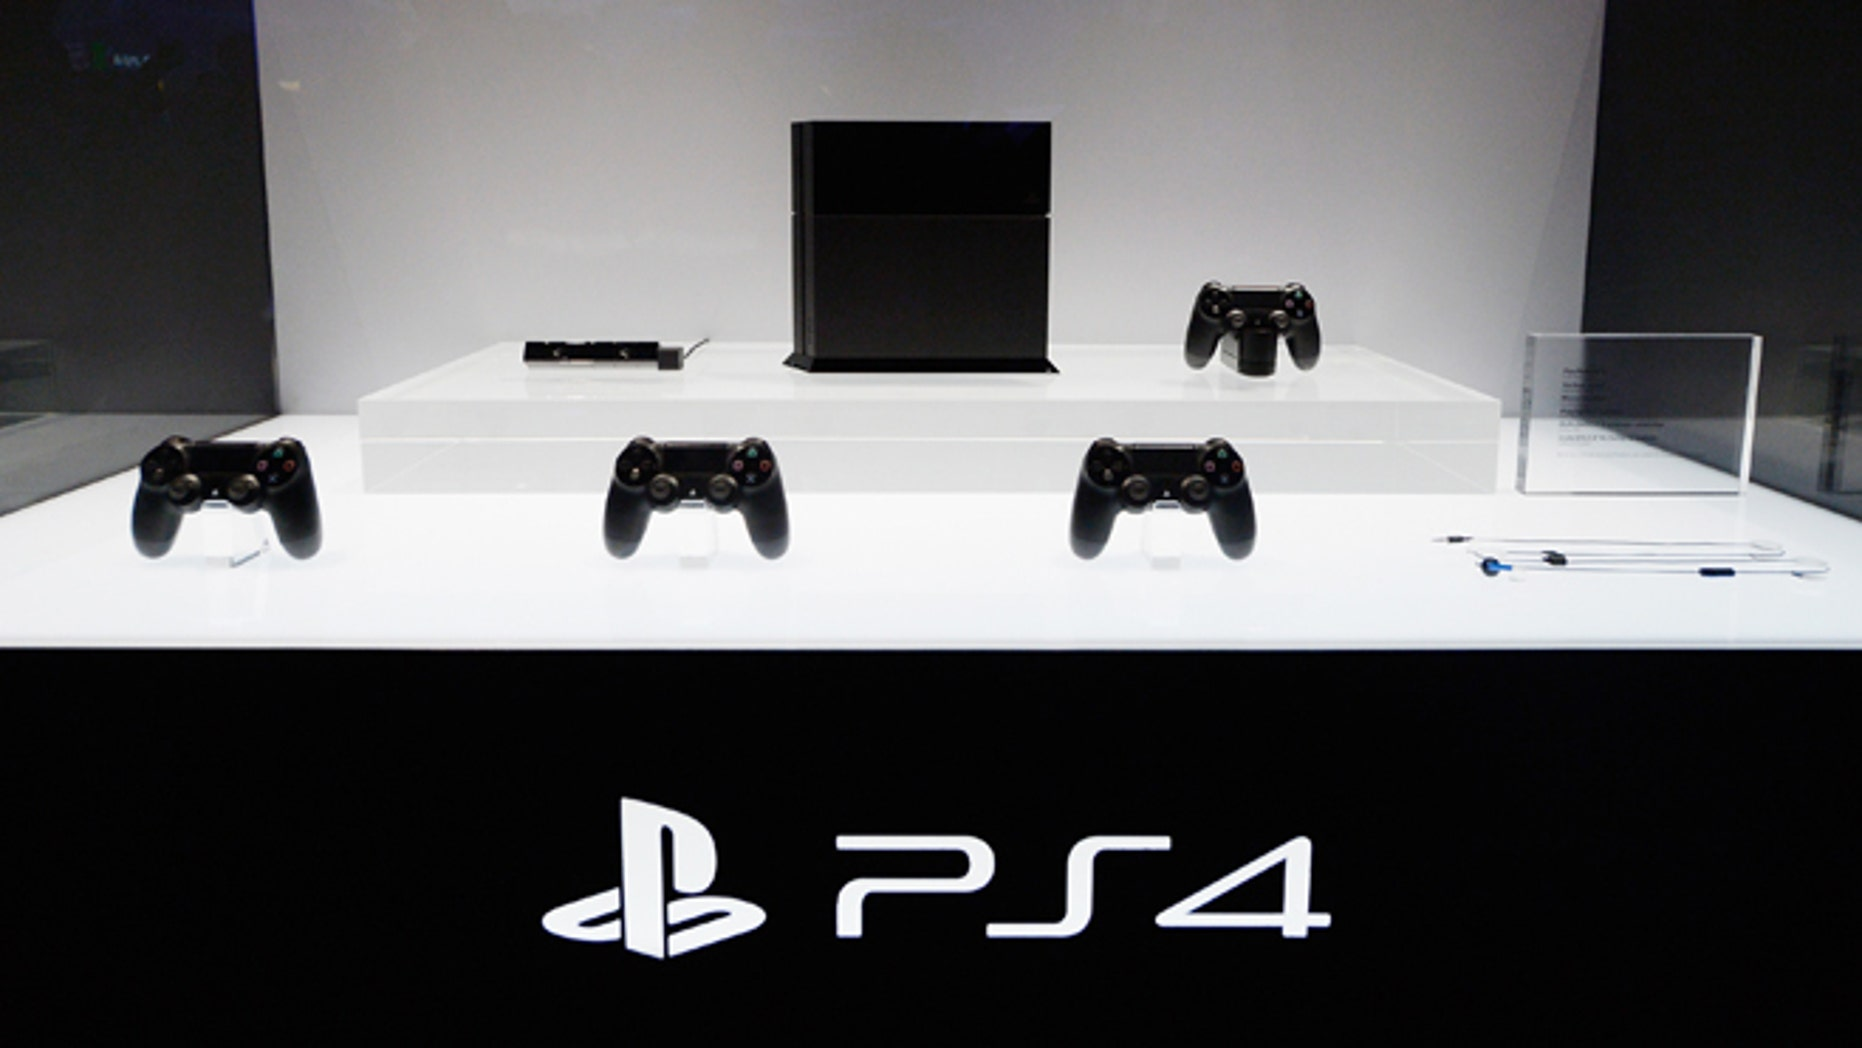 LOS ANGELES, CA - JUNE 11:  A Playstation 4 and its controllers on display at the Sony Playstation E3 2013 booth at the Los Angeles Convention Center on June 11, 2013 in Los Angeles, California. Thousands are expected to attend the annual three-day convention to see the latest games and announcements from the gaming industry.  (Photo by Kevork Djansezian/Getty Images)